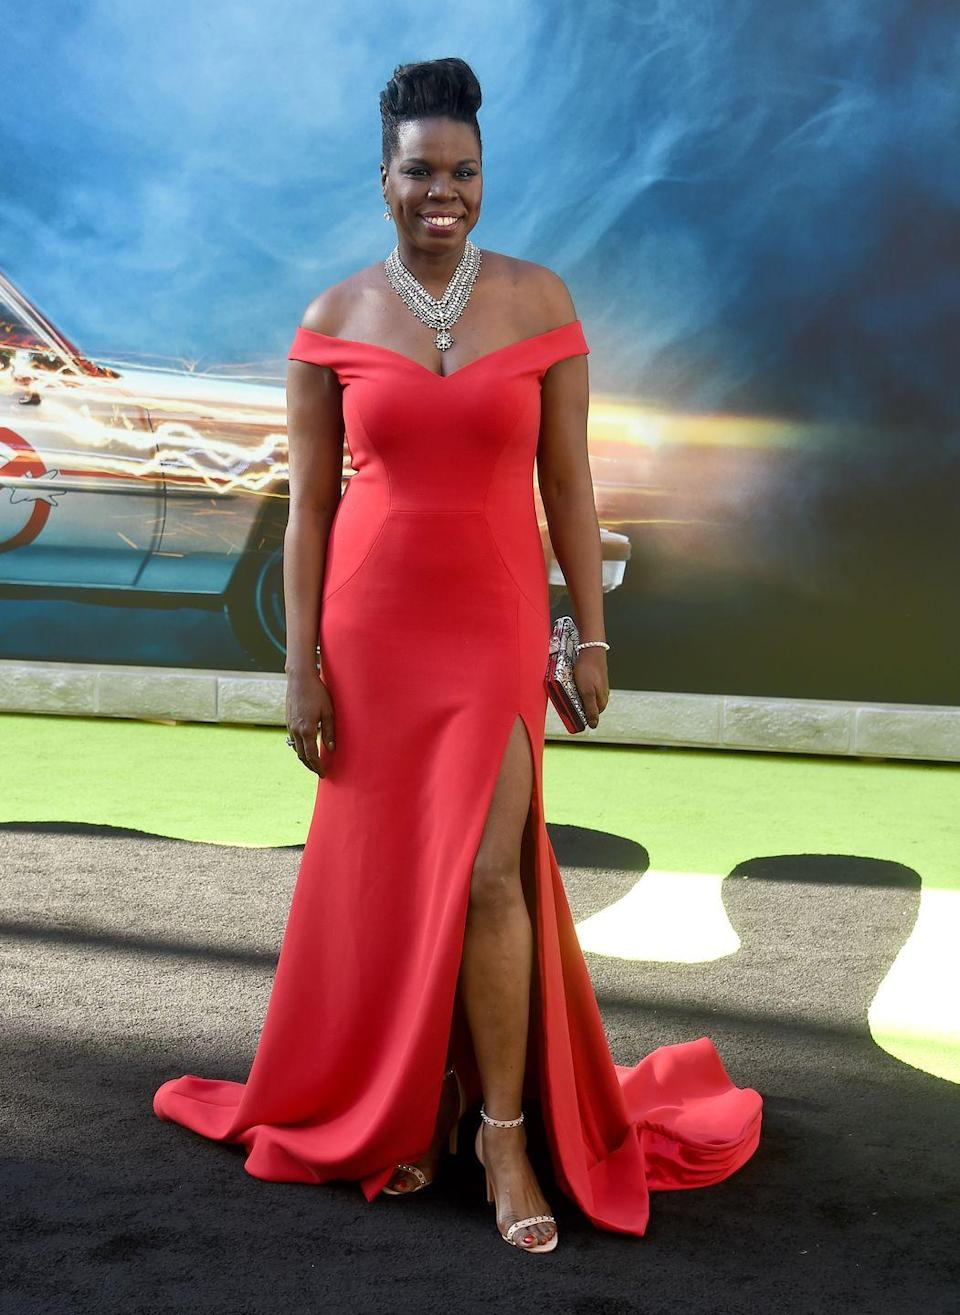 """<p>Jones lamented the lack of designers willing to dress her for the Hollywood premiere of her film <em>Ghostbusters </em>on Twitter. </p><p>""""It's so funny how there are no designers wanting to help me with a premiere dress for the movie. Hmmm that will change and I remember everything<span class=""""redactor-invisible-space"""">,"""" the actress and comedian <span>tweeted</span>. </span></p><p><span class=""""redactor-invisible-space"""">Christian Siriano immediately stepped forward to dress the star (in the stunning red dress pictured), and later responded on <a href=""""https://twitter.com/CSiriano/status/748154852304371714"""" rel=""""nofollow noopener"""" target=""""_blank"""" data-ylk=""""slk:Twitter"""" class=""""link rapid-noclick-resp"""">Twitter</a>: """"It shouldn't be exceptional to work with brilliant people just because they're not sample size. </span></p><p><span class=""""redactor-invisible-space"""">""""Congrats aren't in order, a change is.<span class=""""redactor-invisible-space"""">""""</span><br></span></p>"""